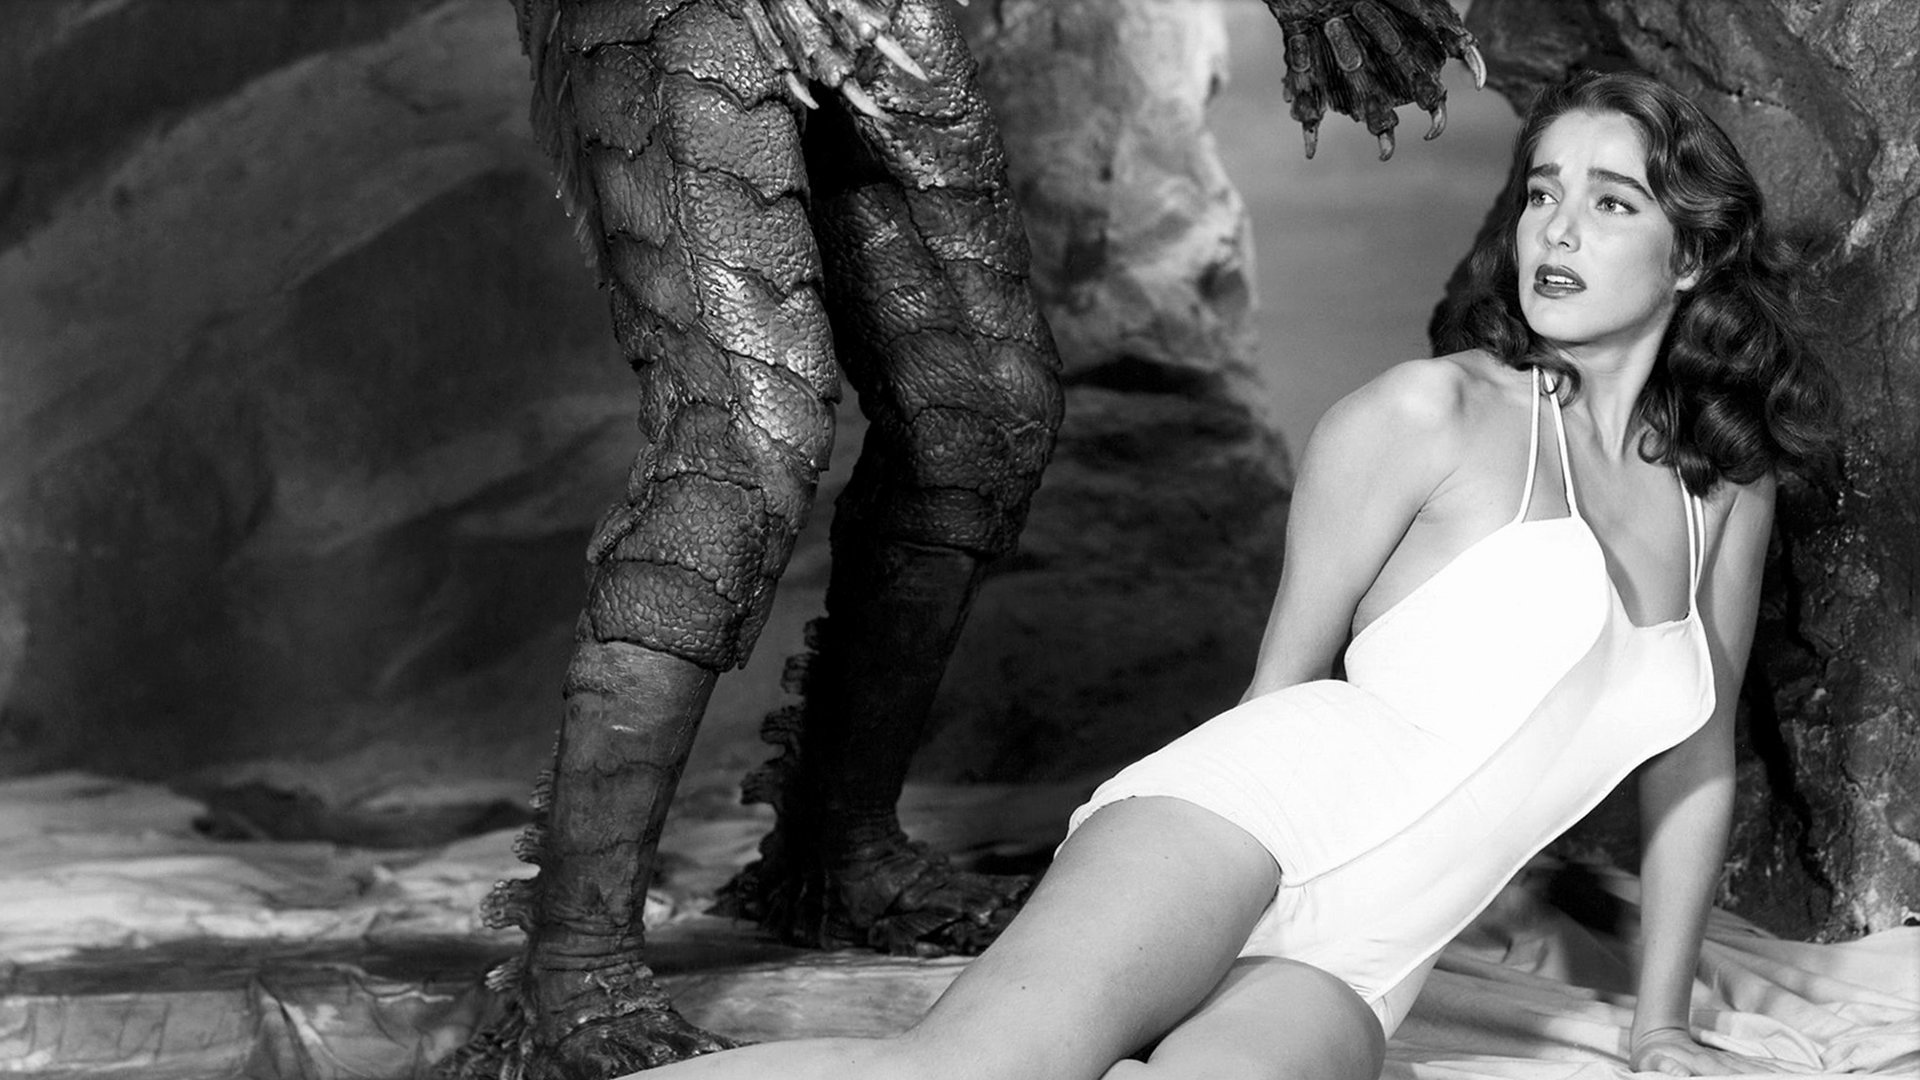 Creature From The Black Lagoon Wallpapers 1920x1080 Full Hd 1080p